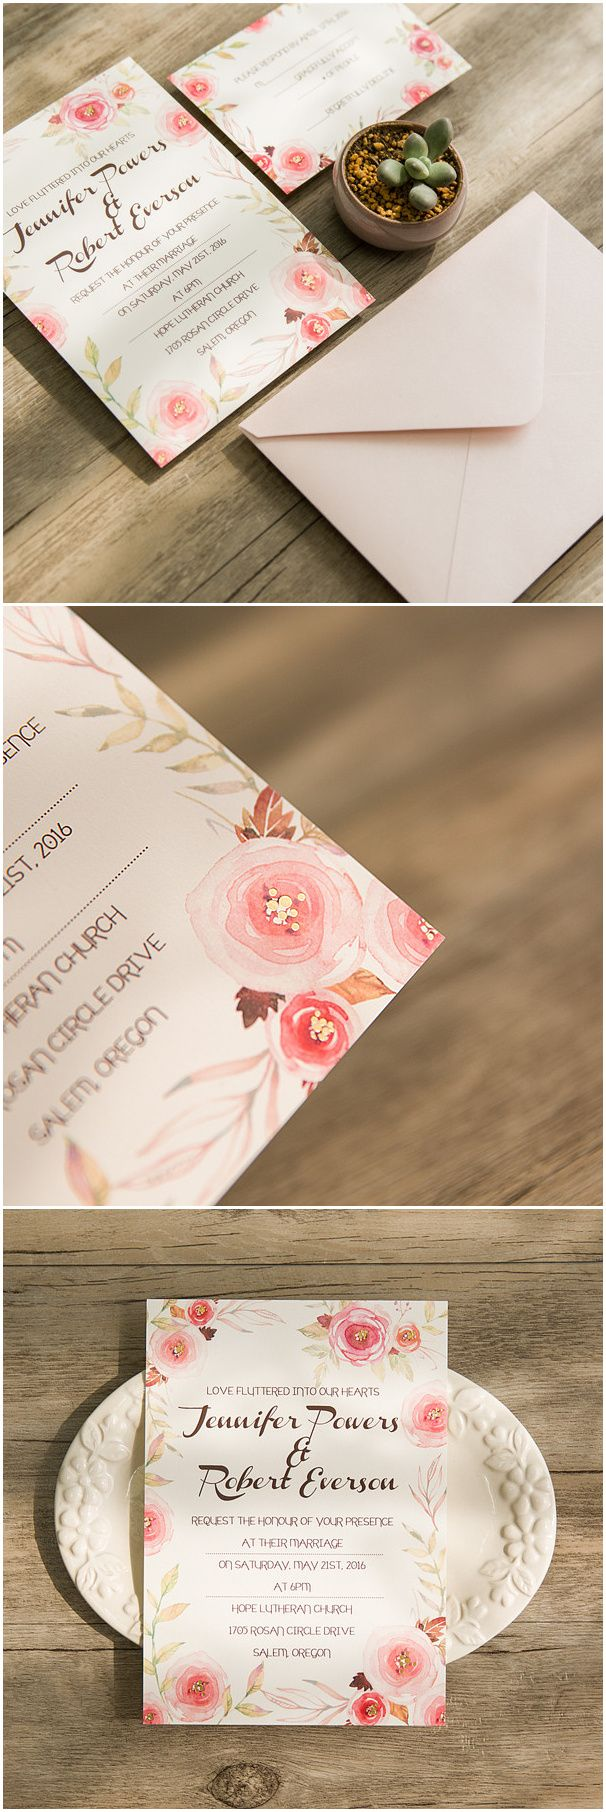 chic romantic pink floral with gold foiled